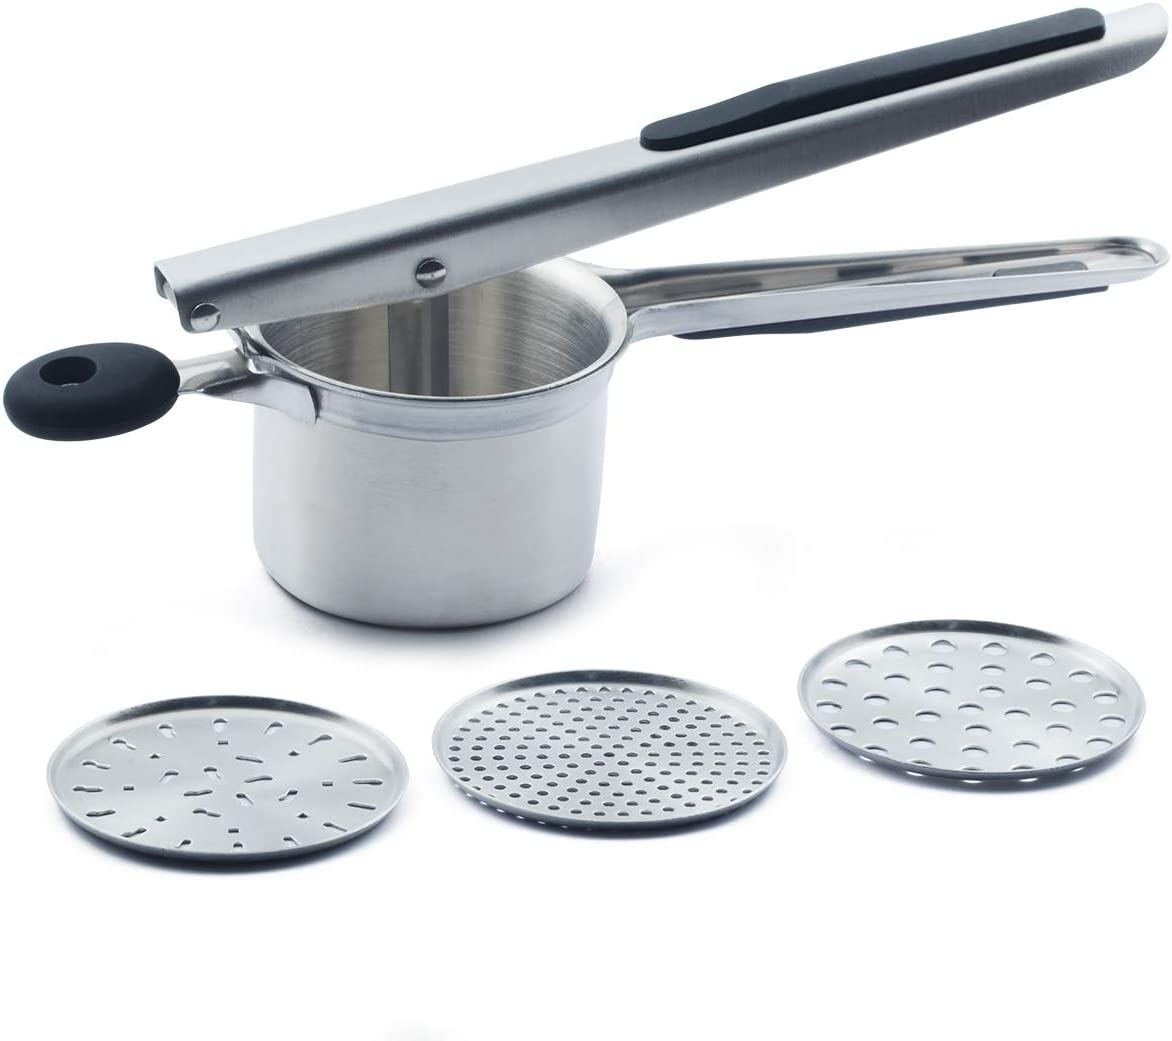 CAMKYDE Stainless Steel Potato Ricer, Potato Masher with 3 Interchangeable Discs for Light and Fluffy Mashed Potato, Fruits, Vegetables, Baby Food